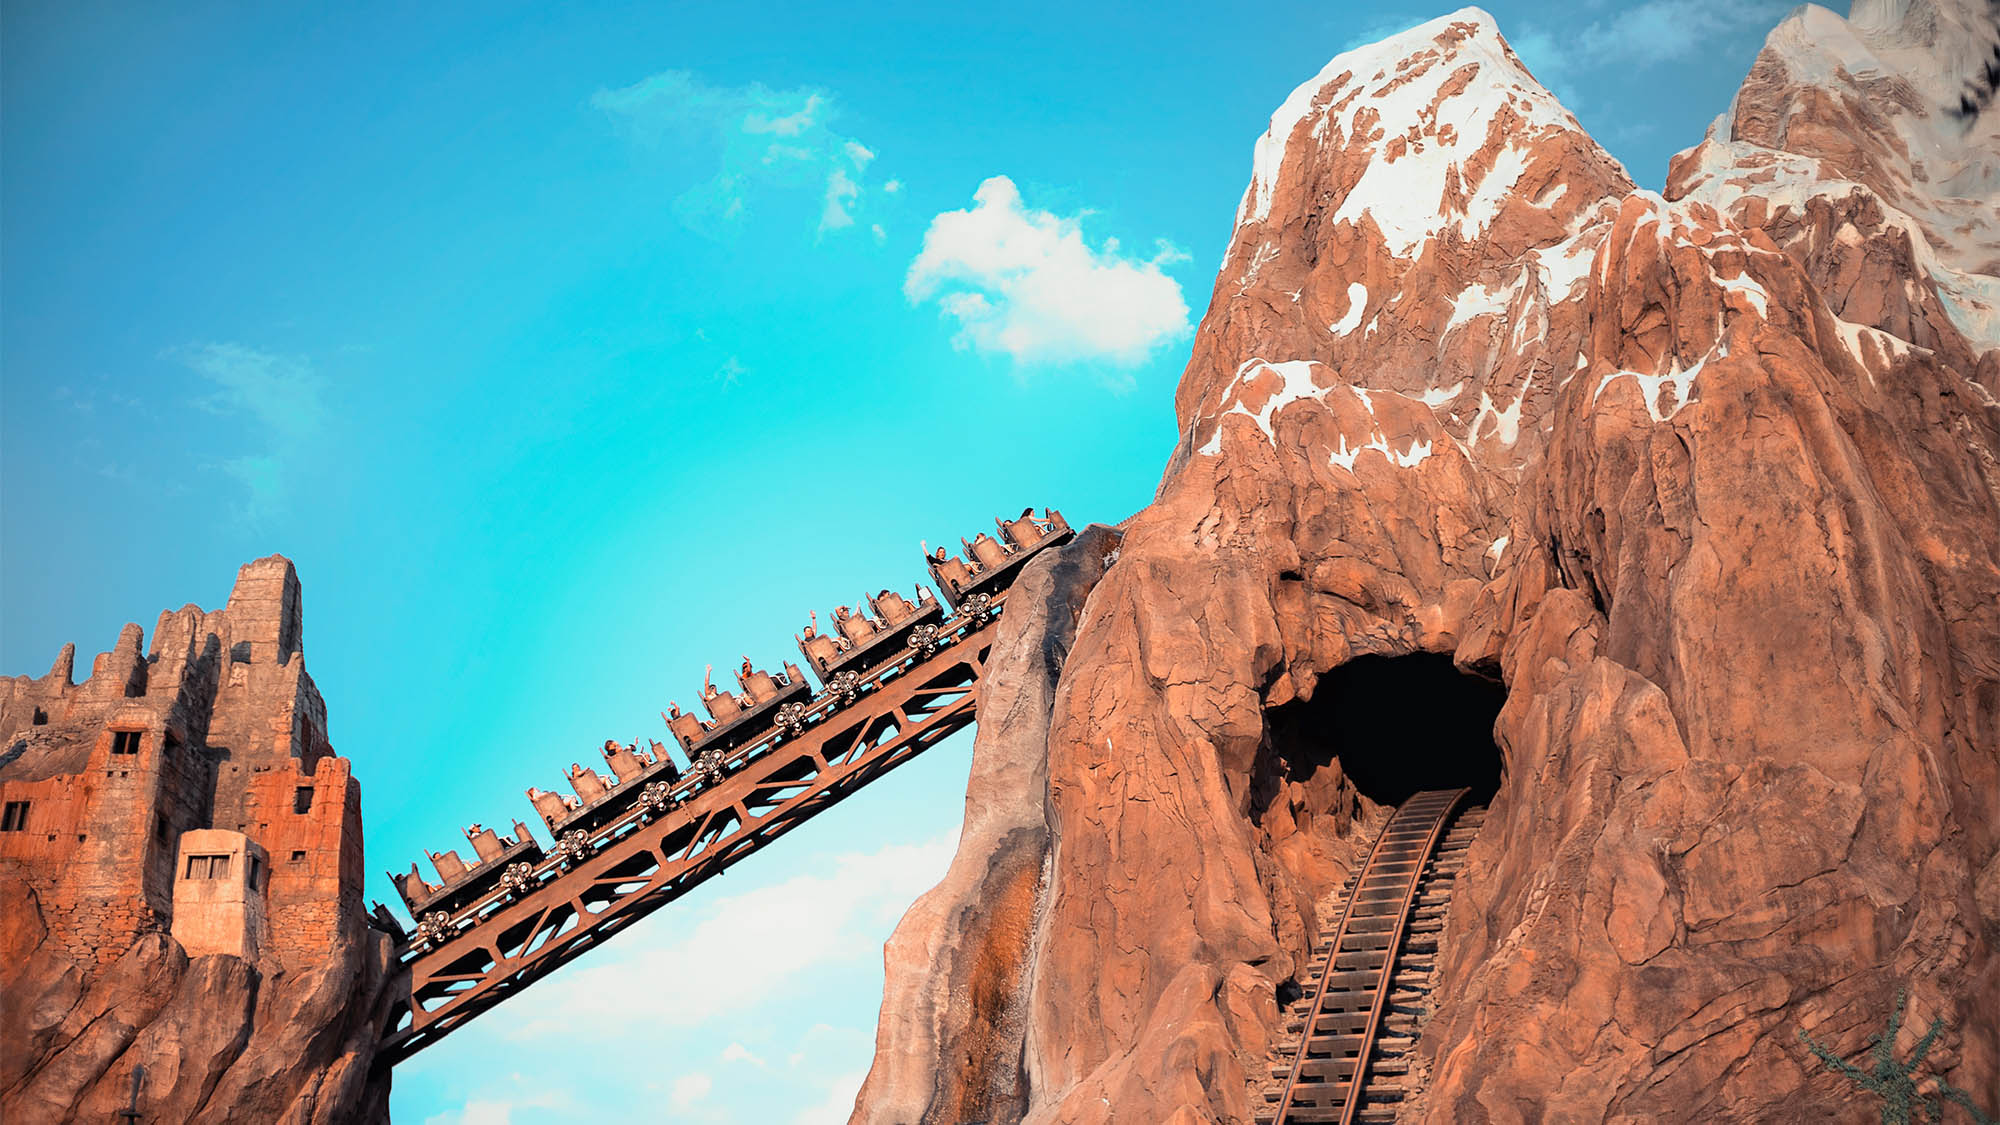 Expedition Everest Disney Roller Coaster